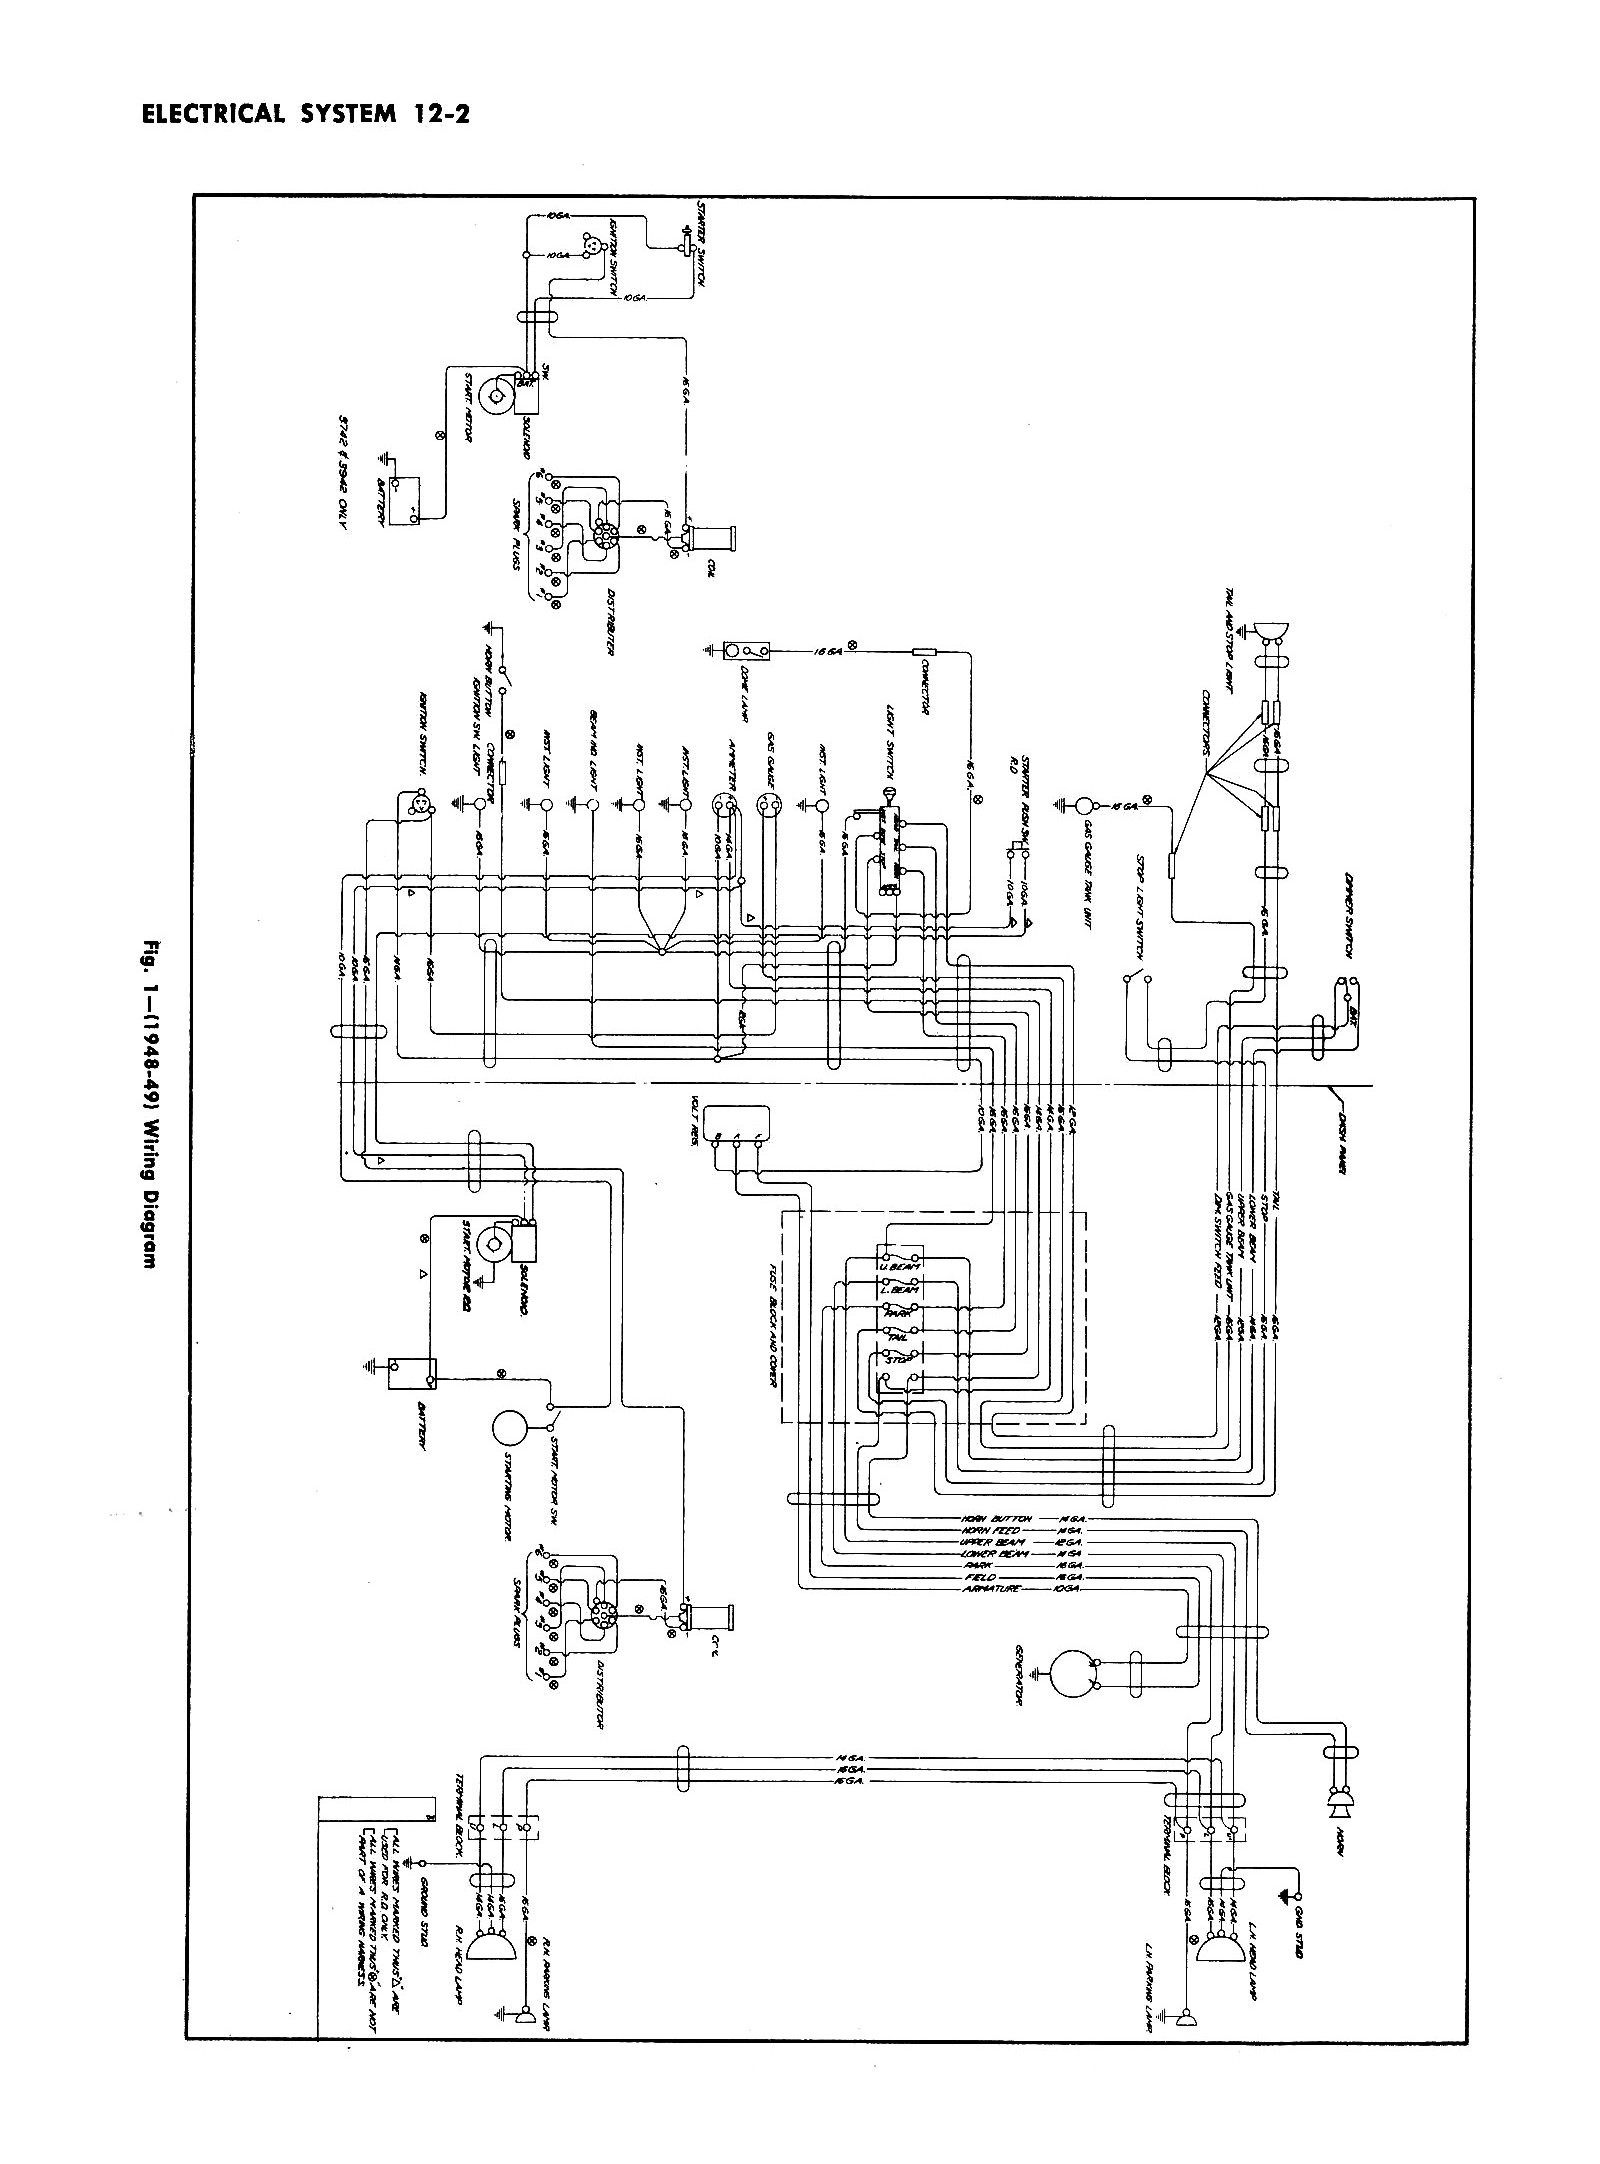 48car gmc ke switch wiring diagram wiring diagram simonand gmc truck wiring diagrams at bakdesigns.co